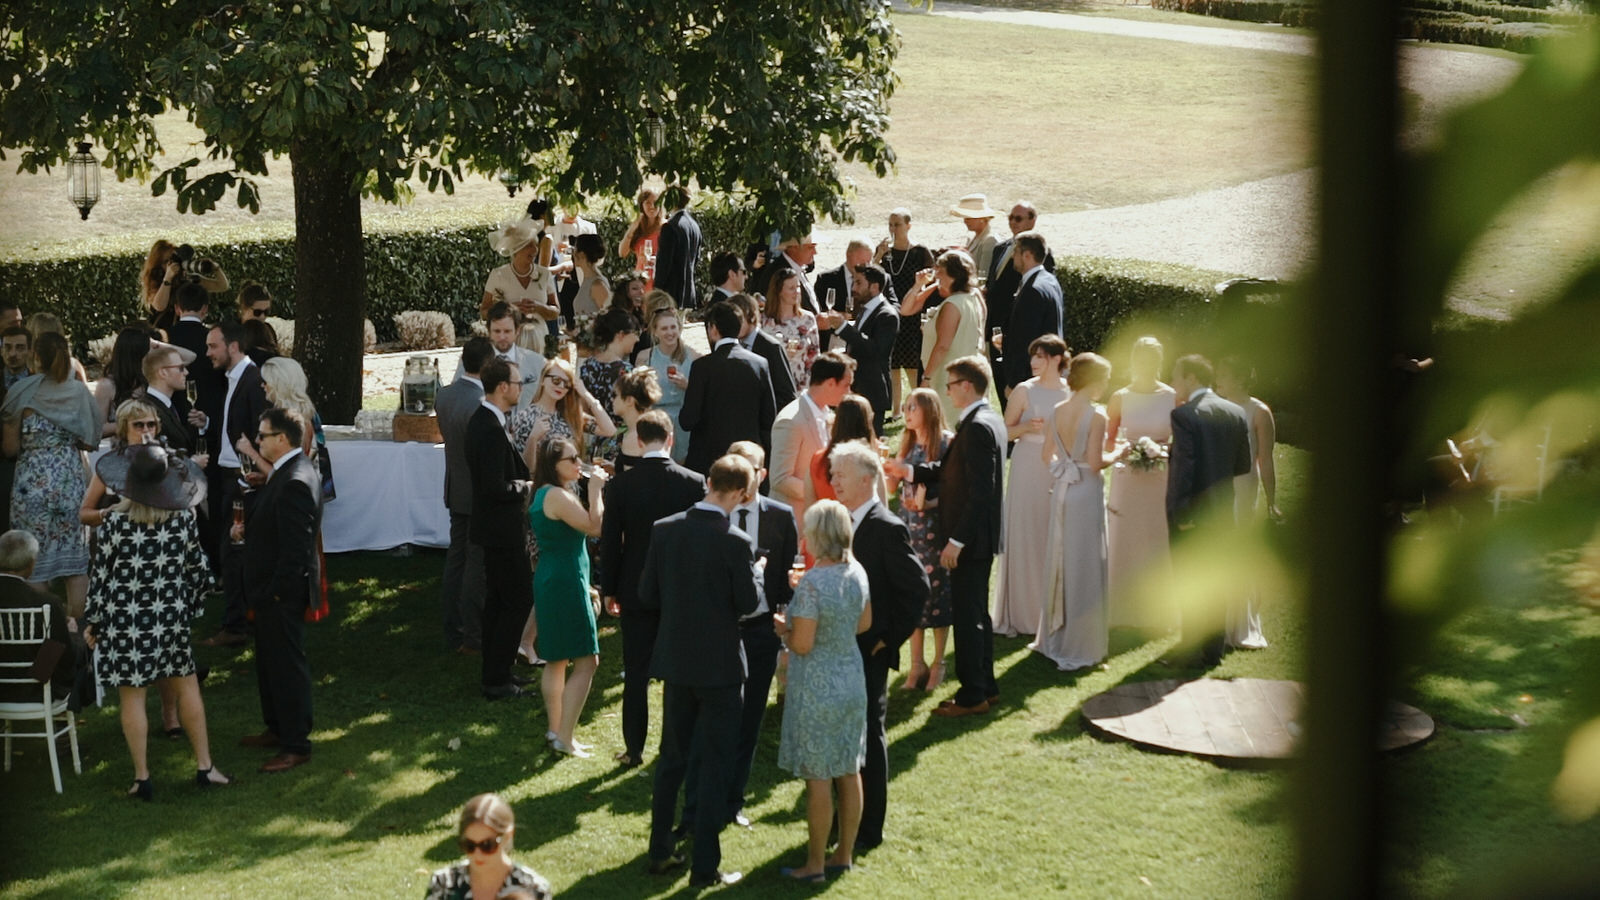 Guests enjoy cocktails at the Chateau Rigaud